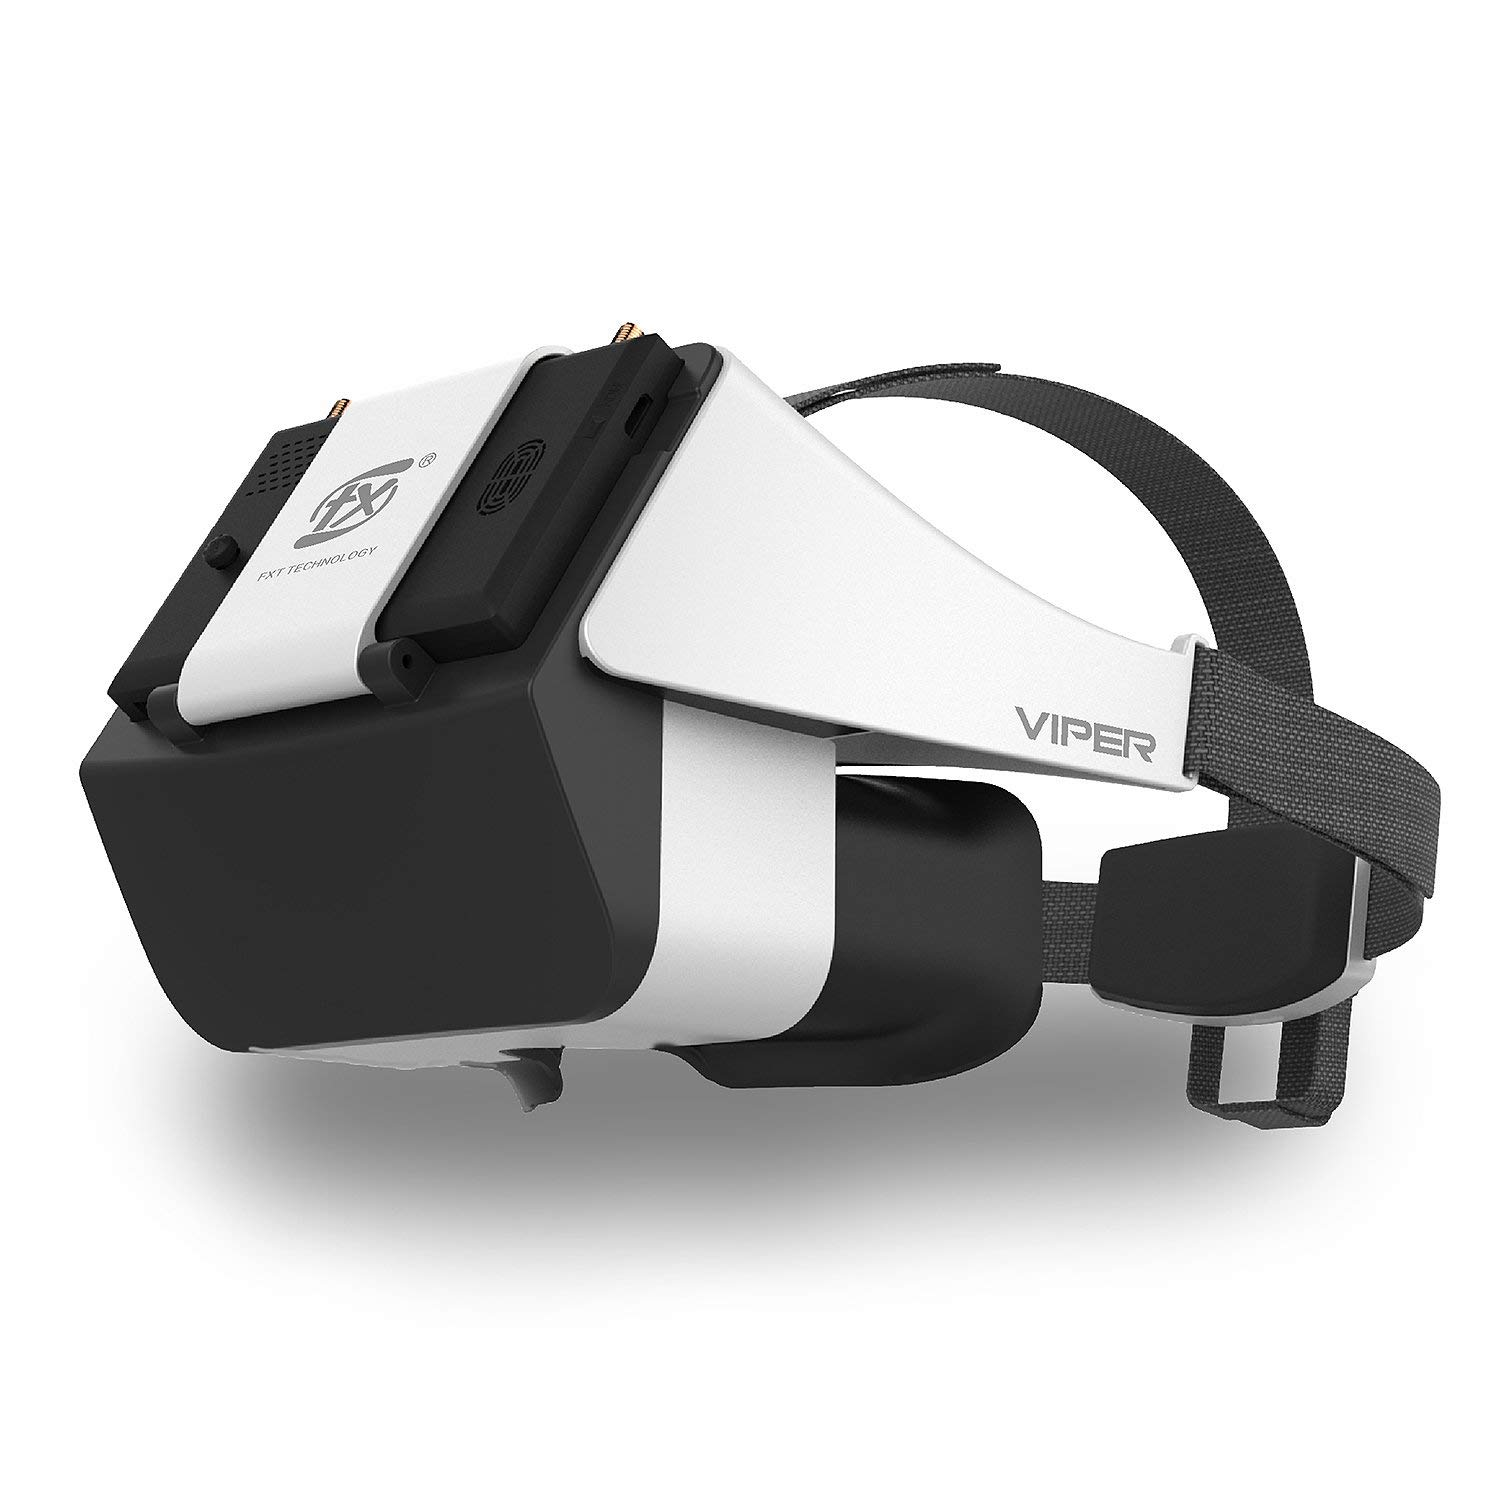 FXT VIPER Version 2.0 5.8G Diversity HD FPV Video Goggles With DVR Built-in Refractor For RC Drone Quadcopter FPV Accessoriess